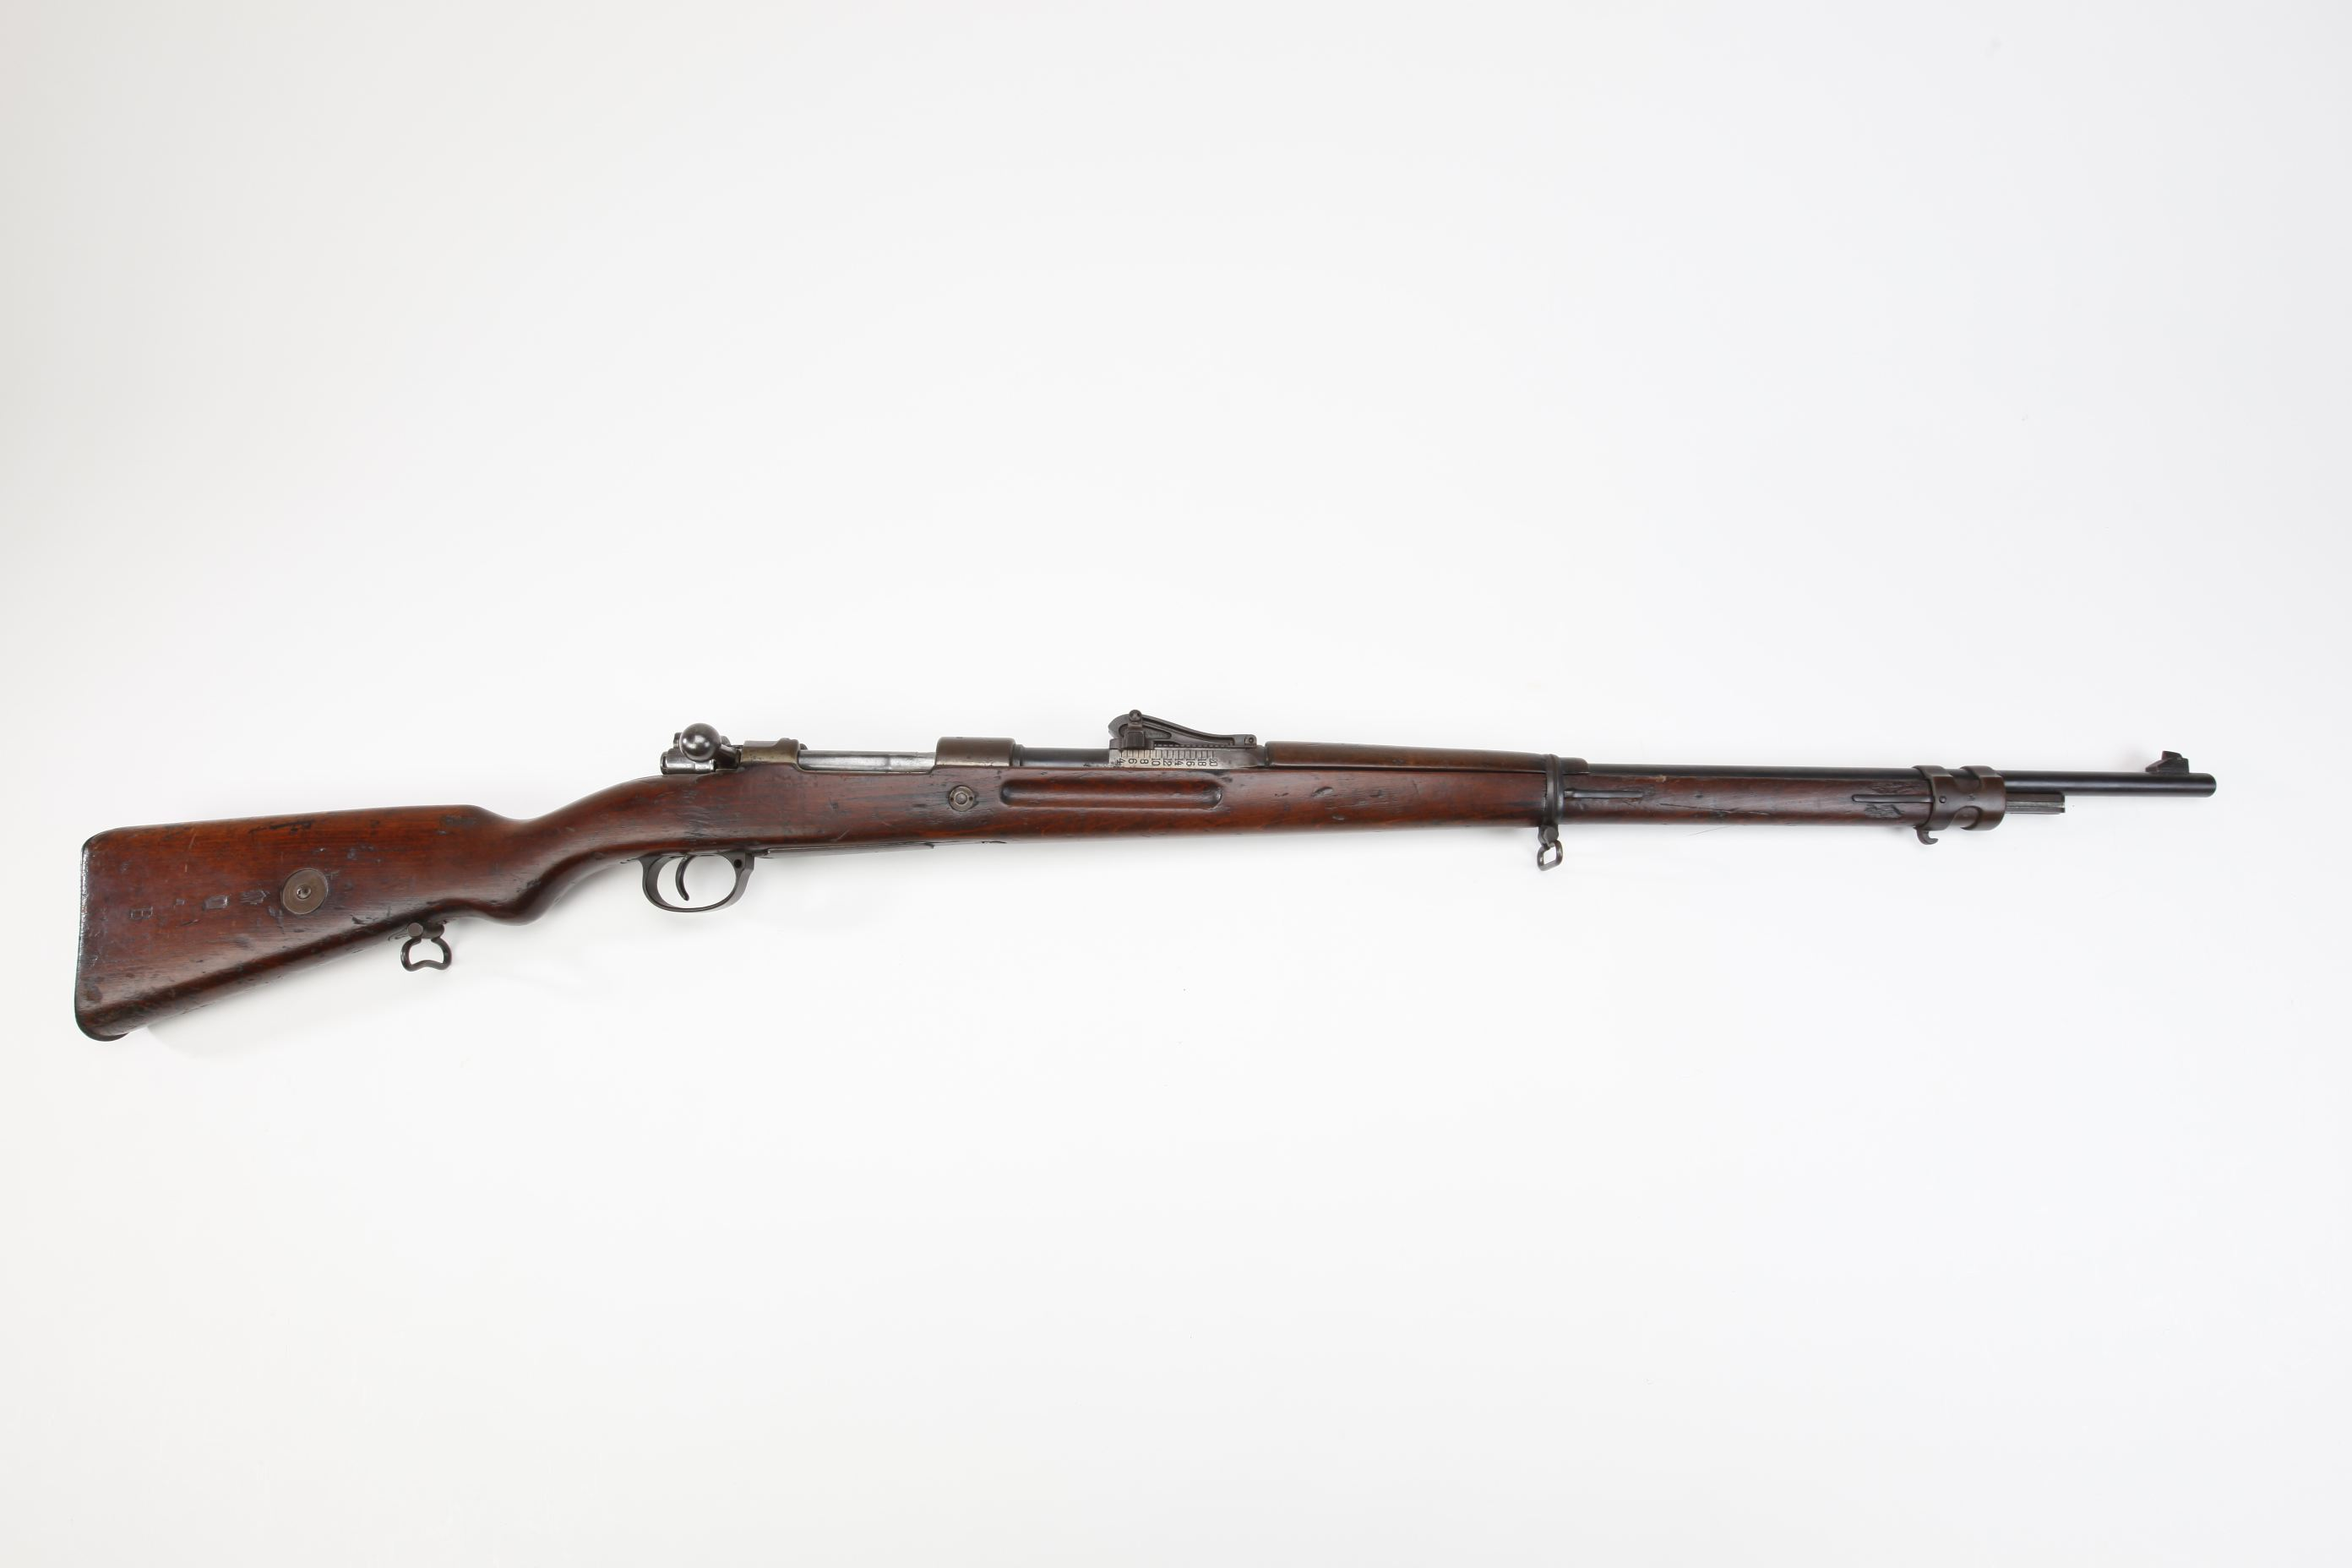 Danzig Arsenal Gewehr 98 Bolt Action Rifle